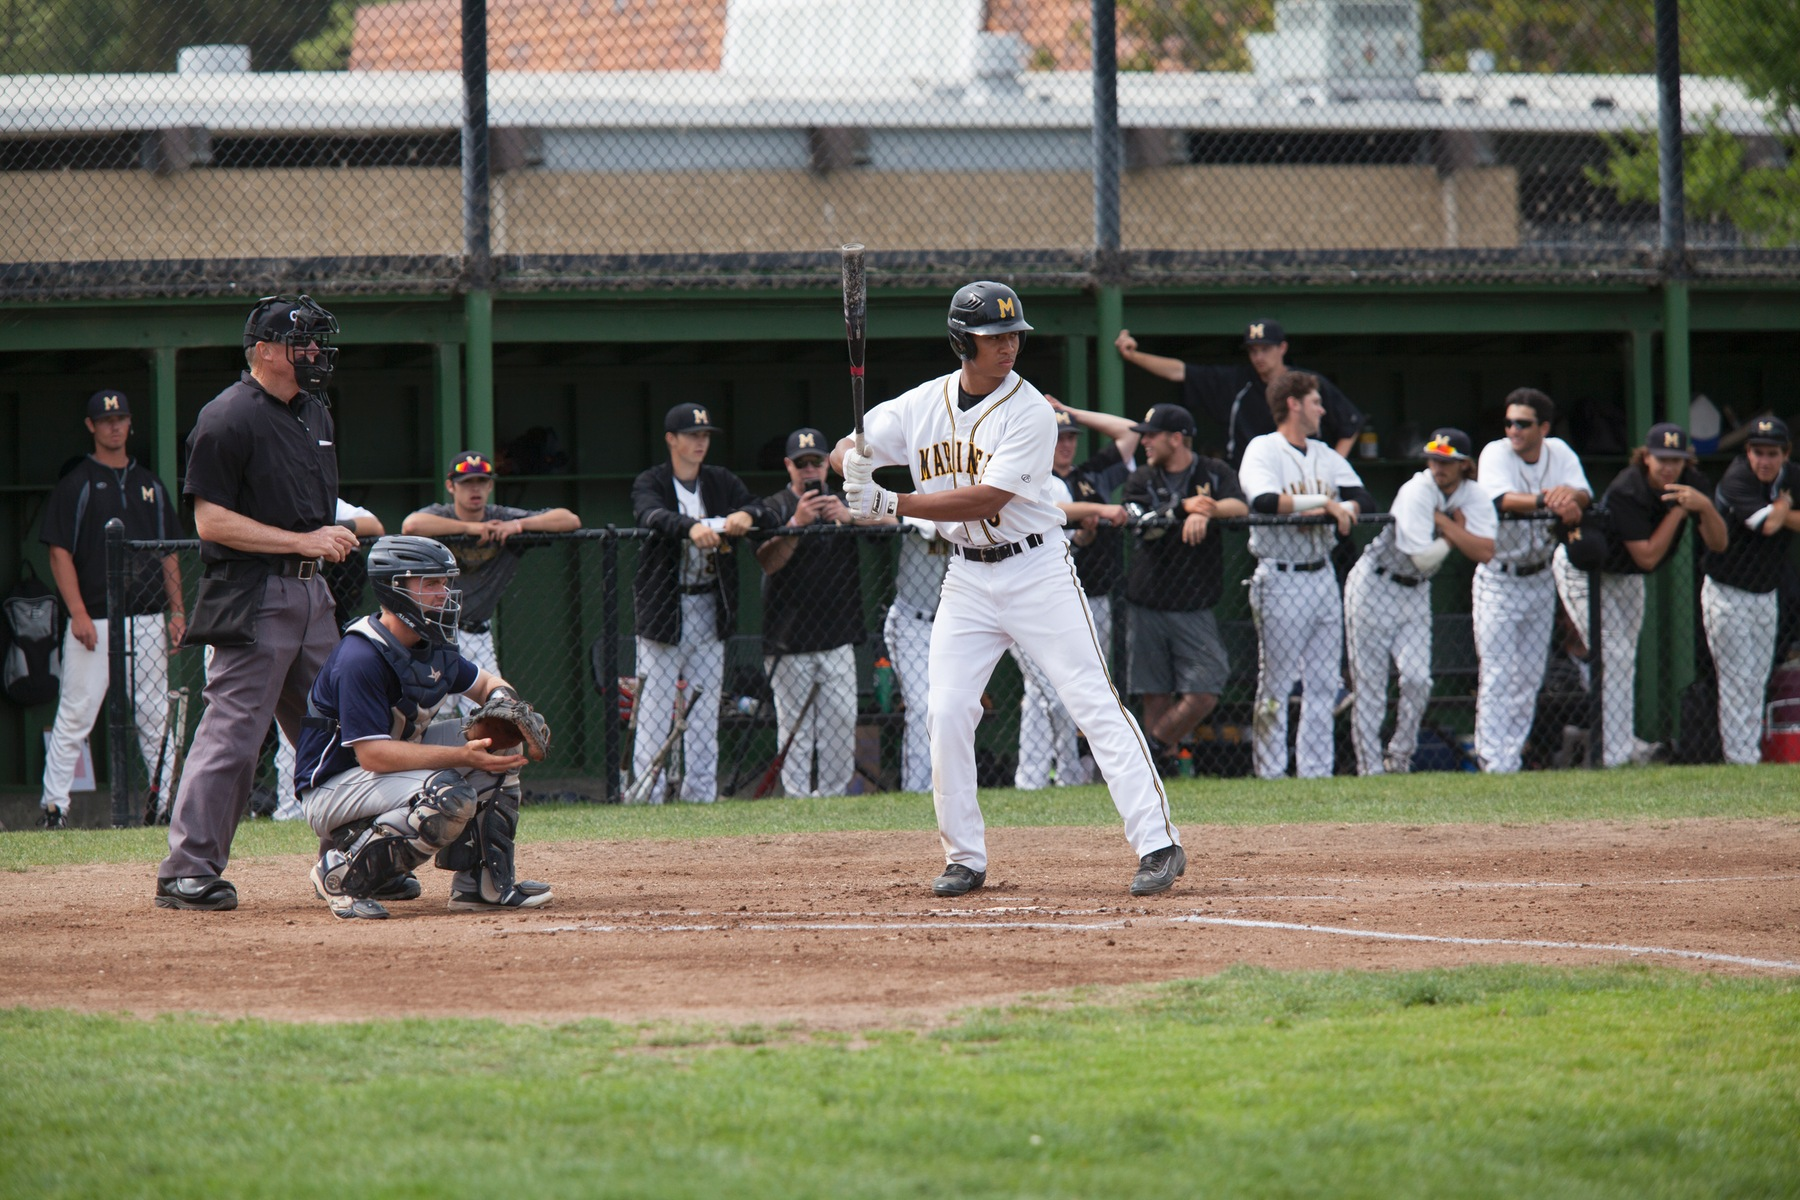 COM's Garihan Dominates & Bats Explode Against Solano College In 11-1 Victory